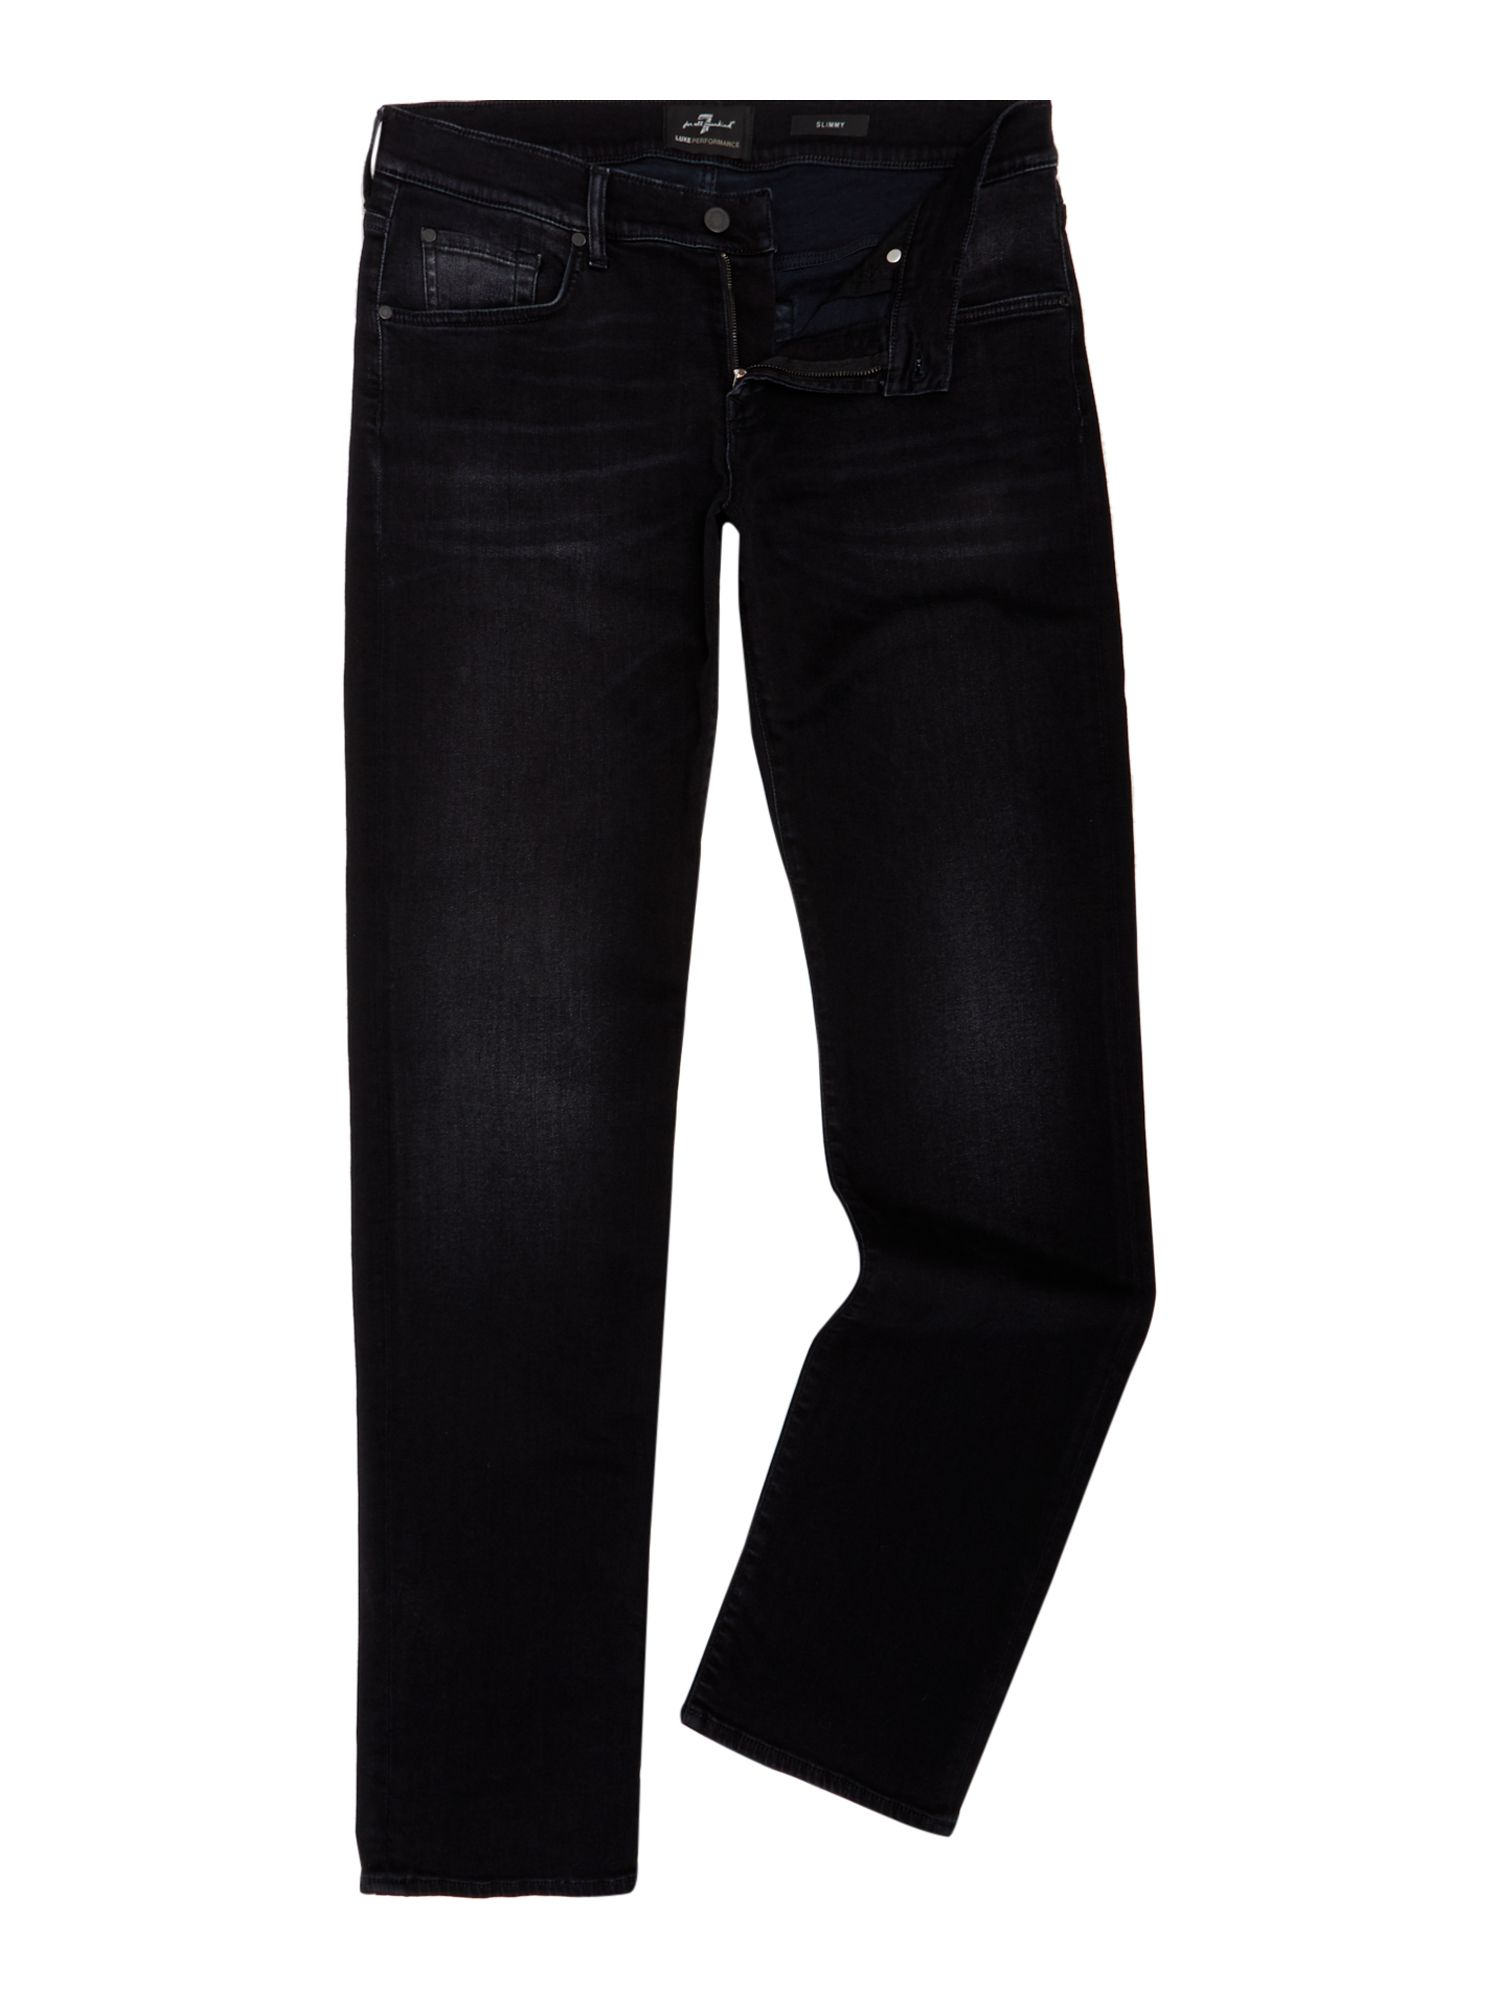 Mens Slim Fit Slimmy Luxe Performance Jeans, Black